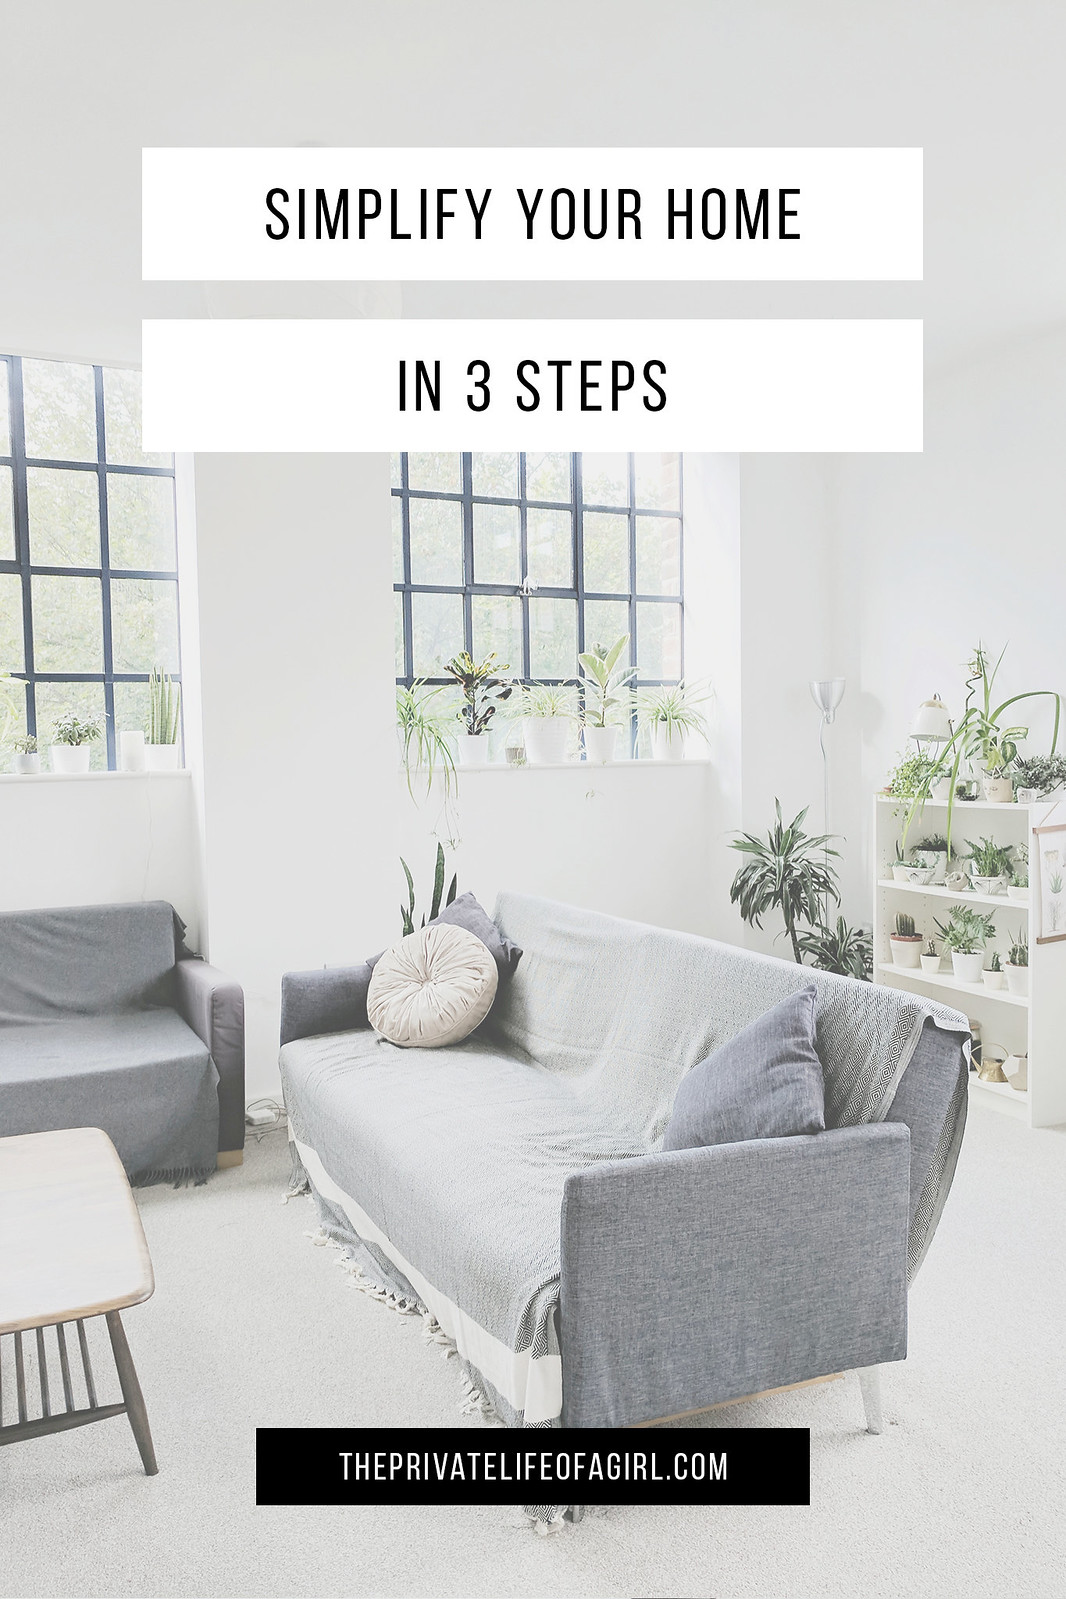 Simplify Your Home In 3 Steps